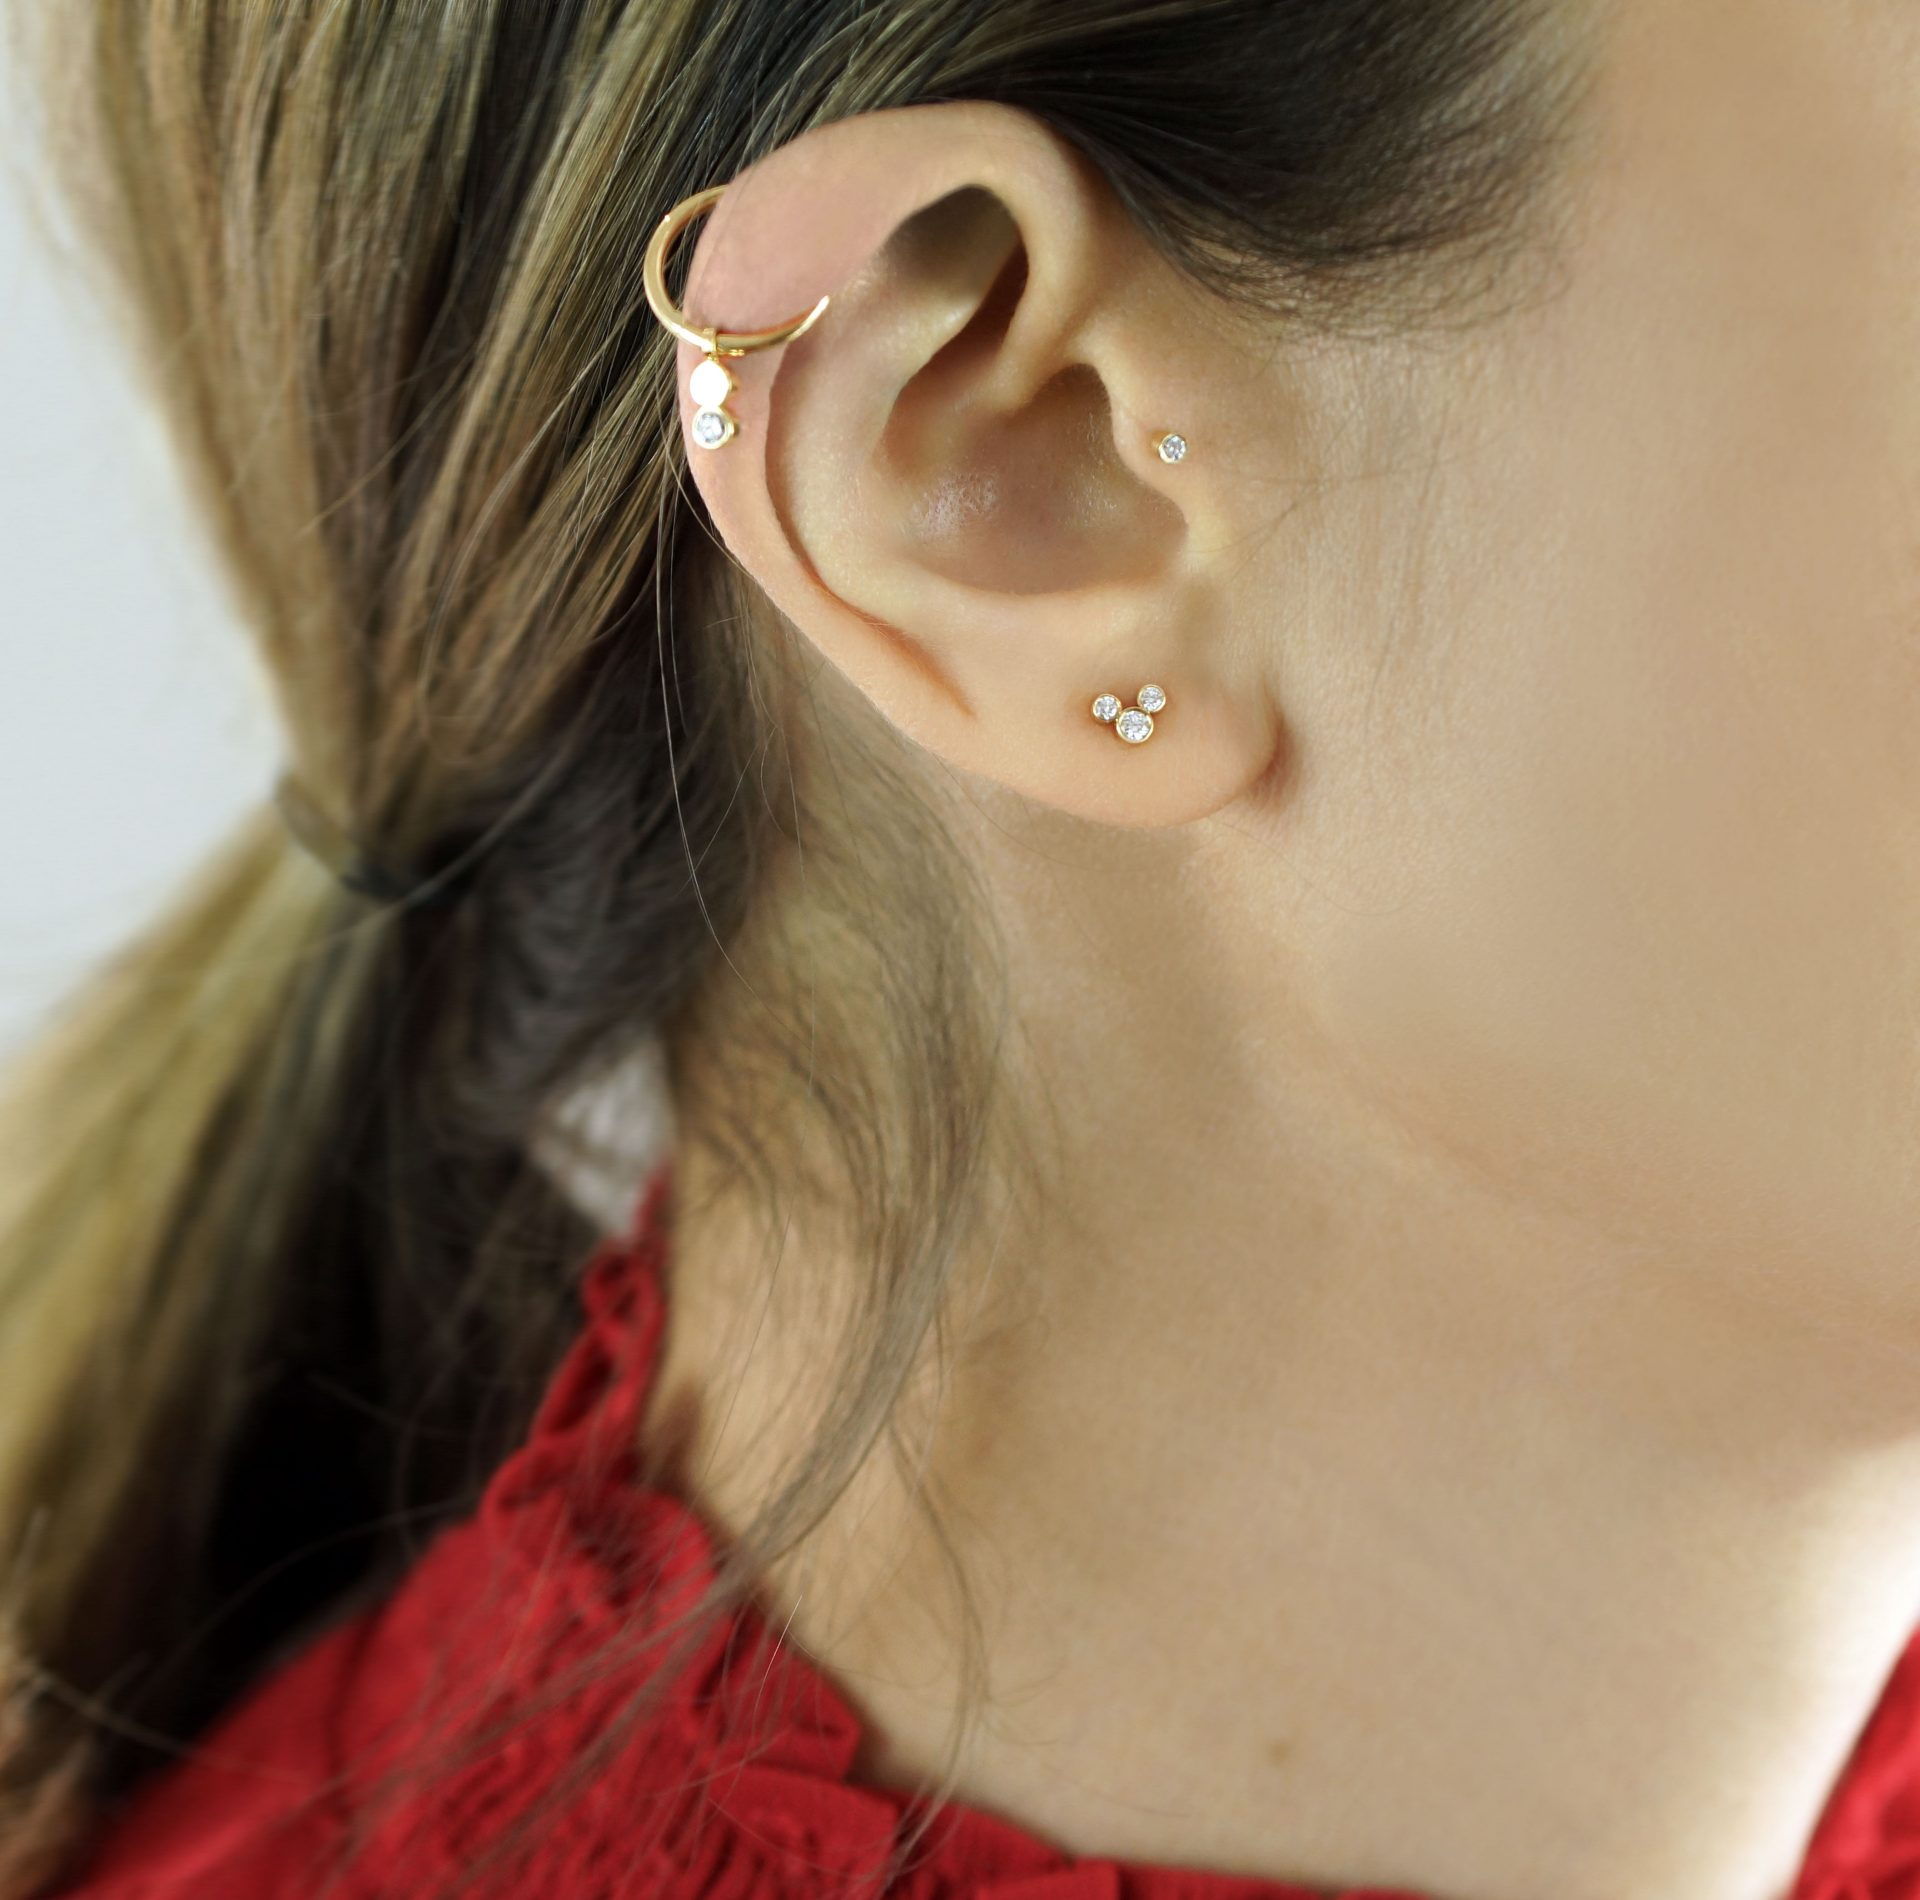 WHAT EAR PIERCINGS GO WELL TOGETHER? Multiple piercings